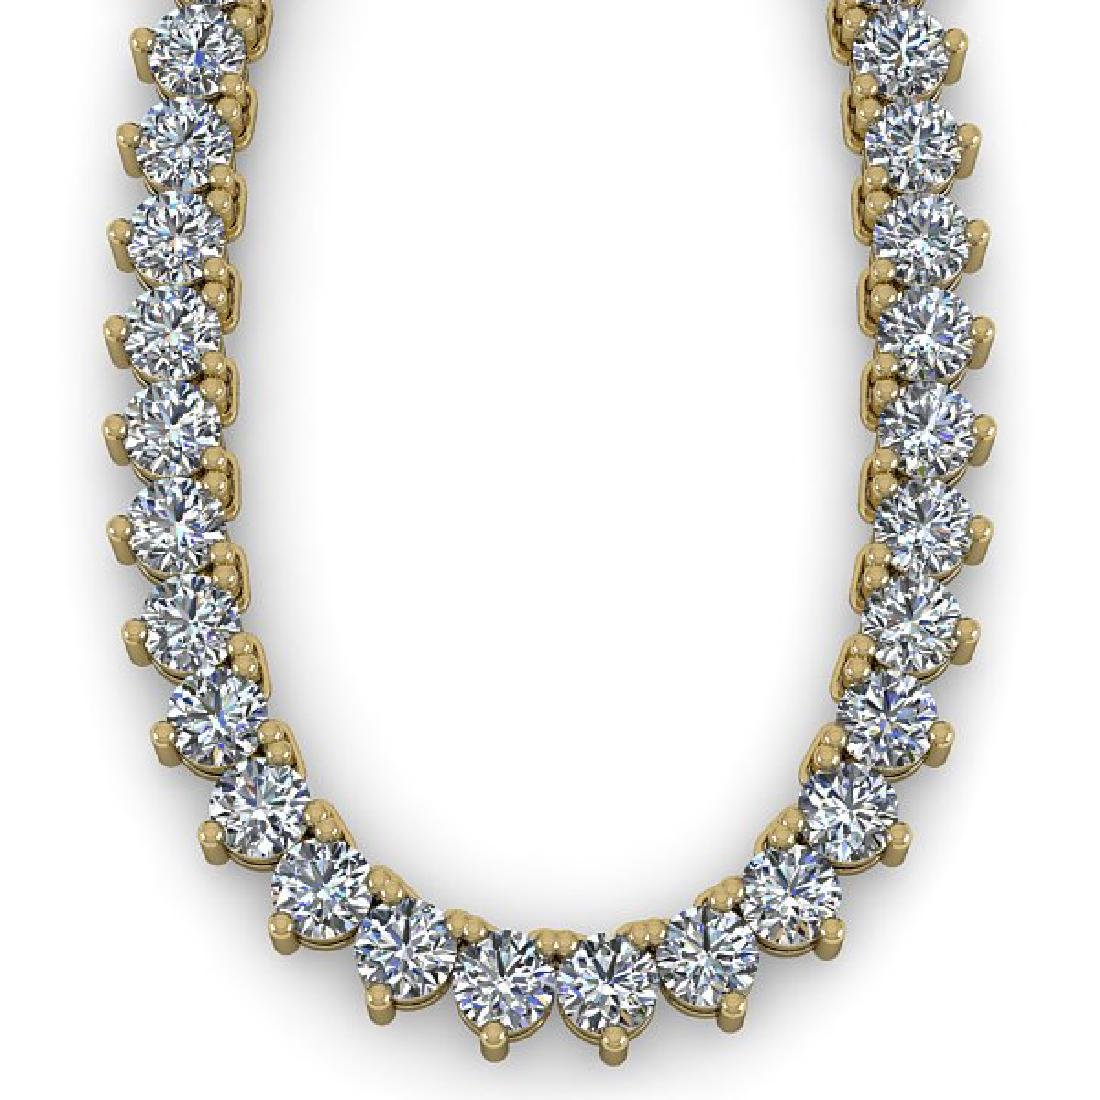 25 CTW Solitaire VS/SI Diamond Necklace 18K Yellow Gold - 2